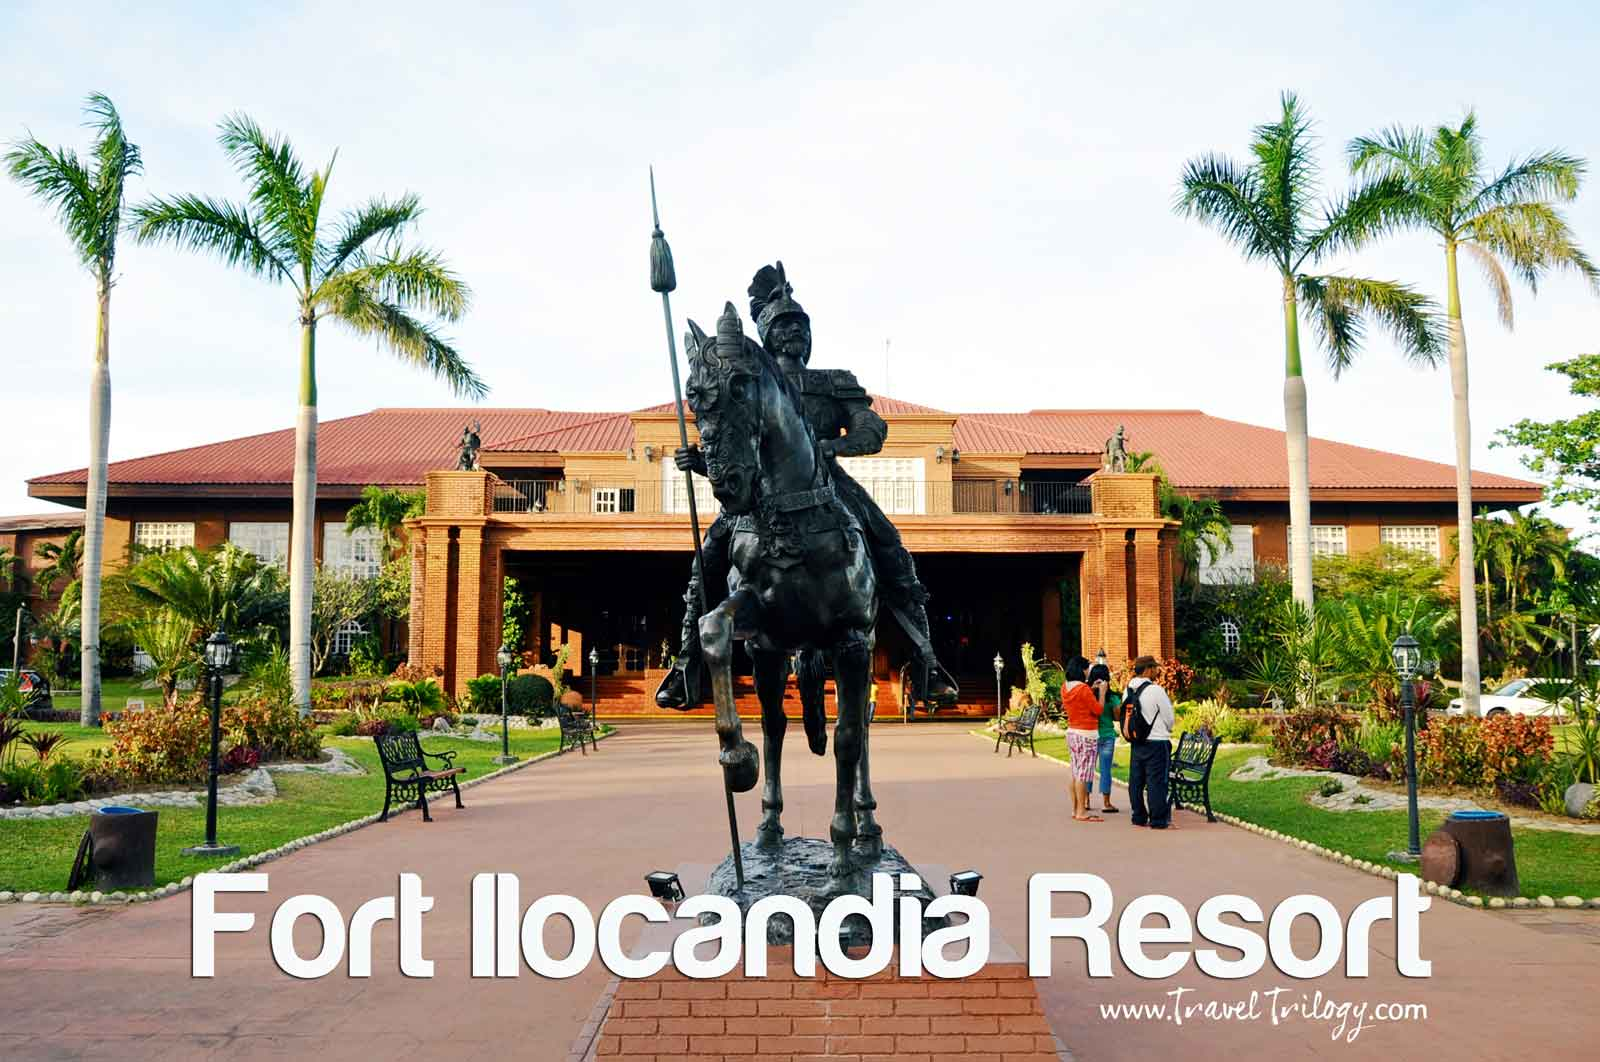 fort ilocandia resort